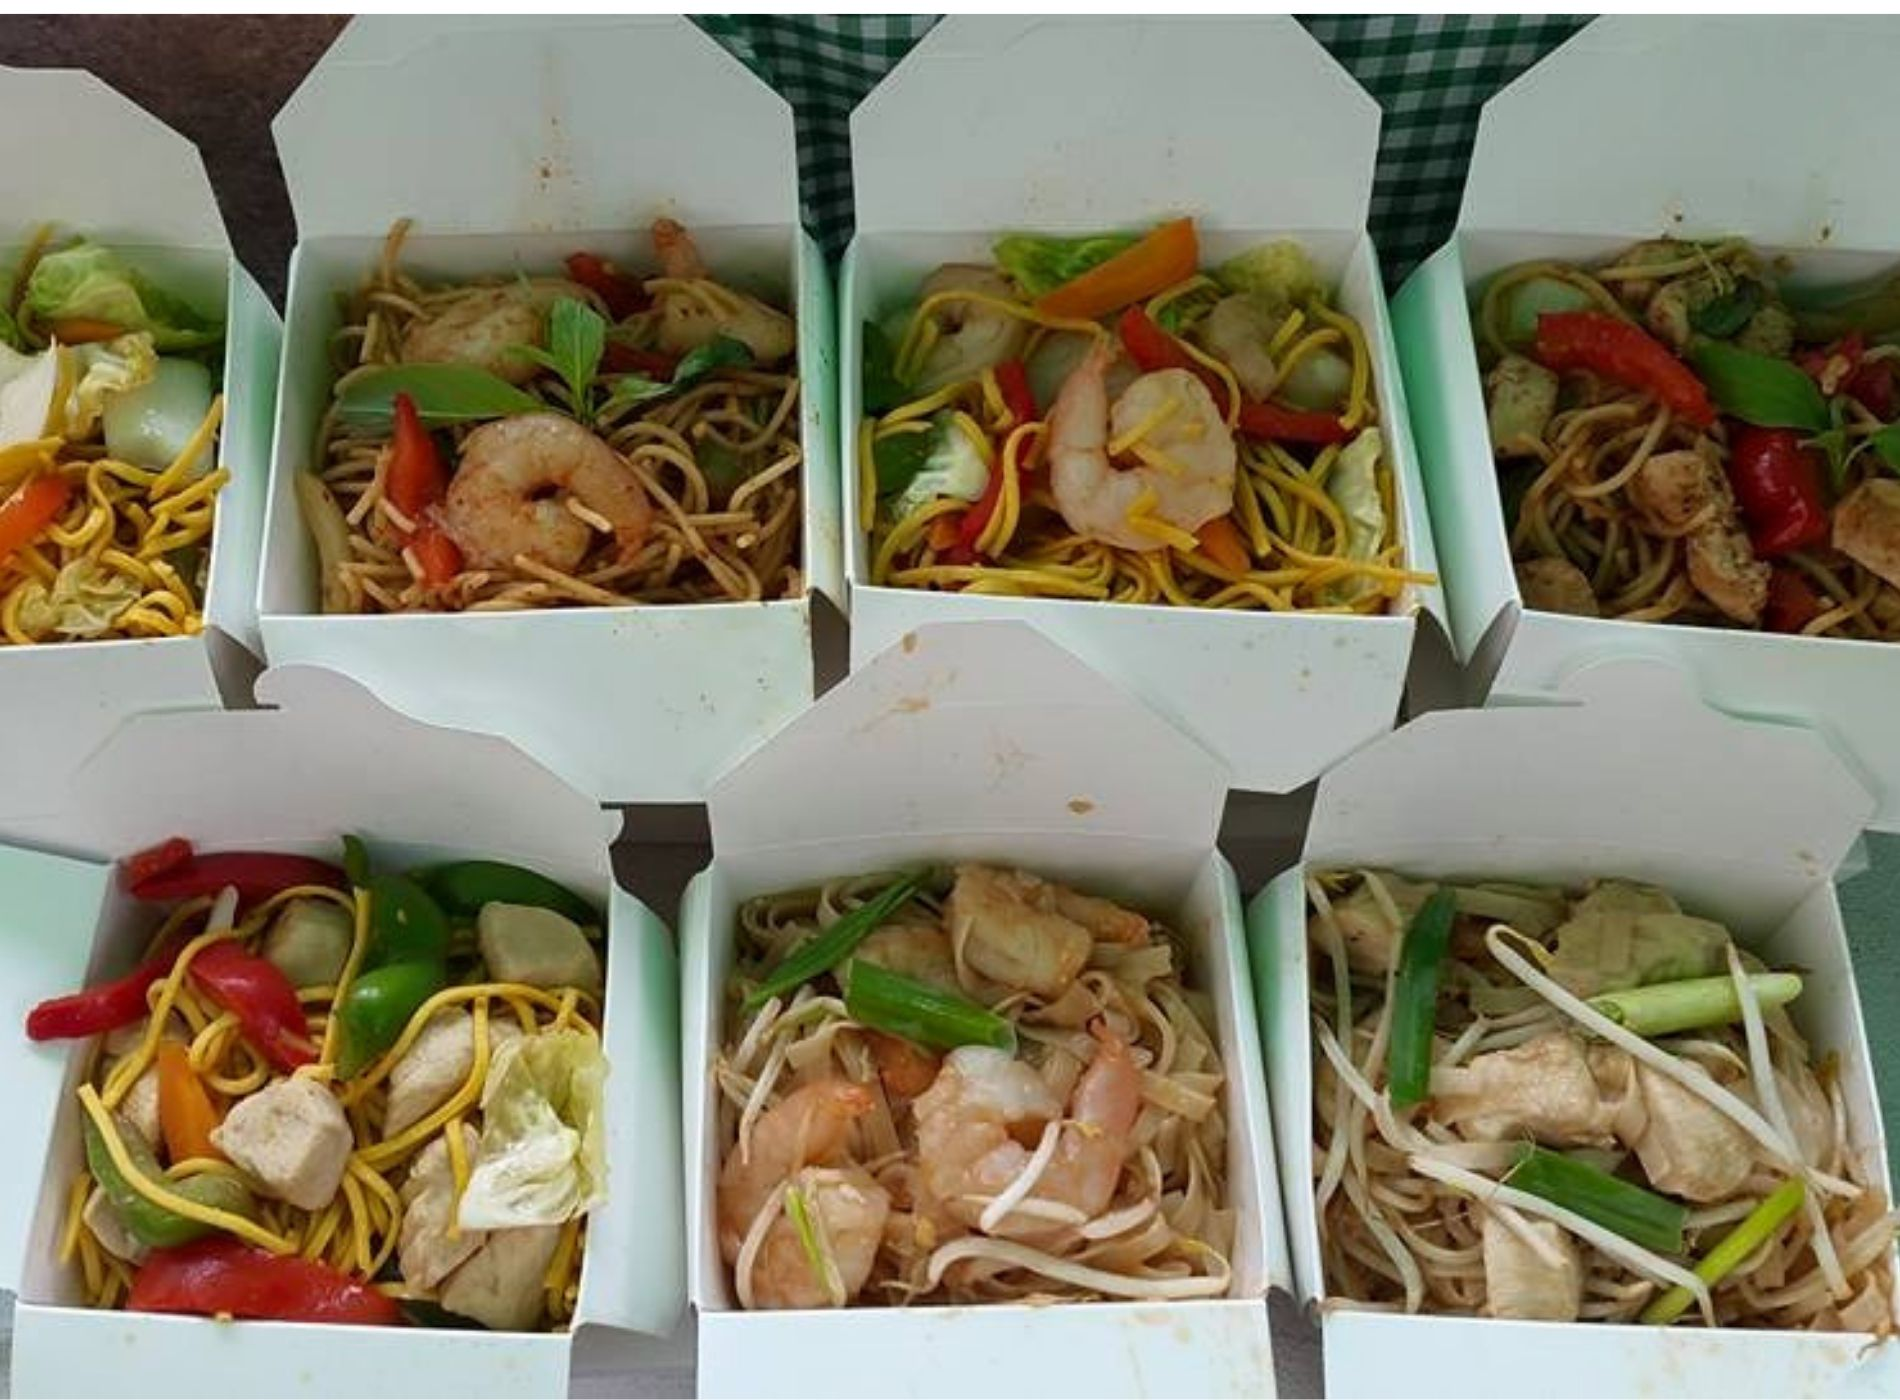 A selection of Thai food